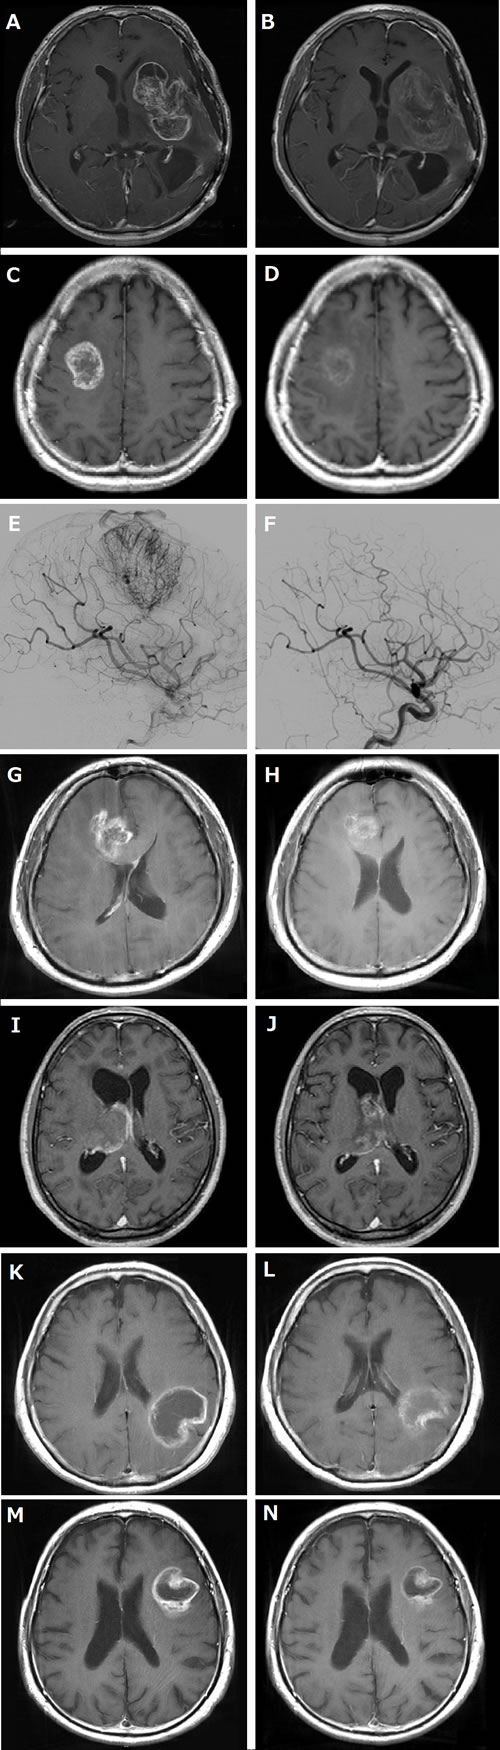 MRI and angiography of before and after neoadjuvant bevacizumab (Bev).